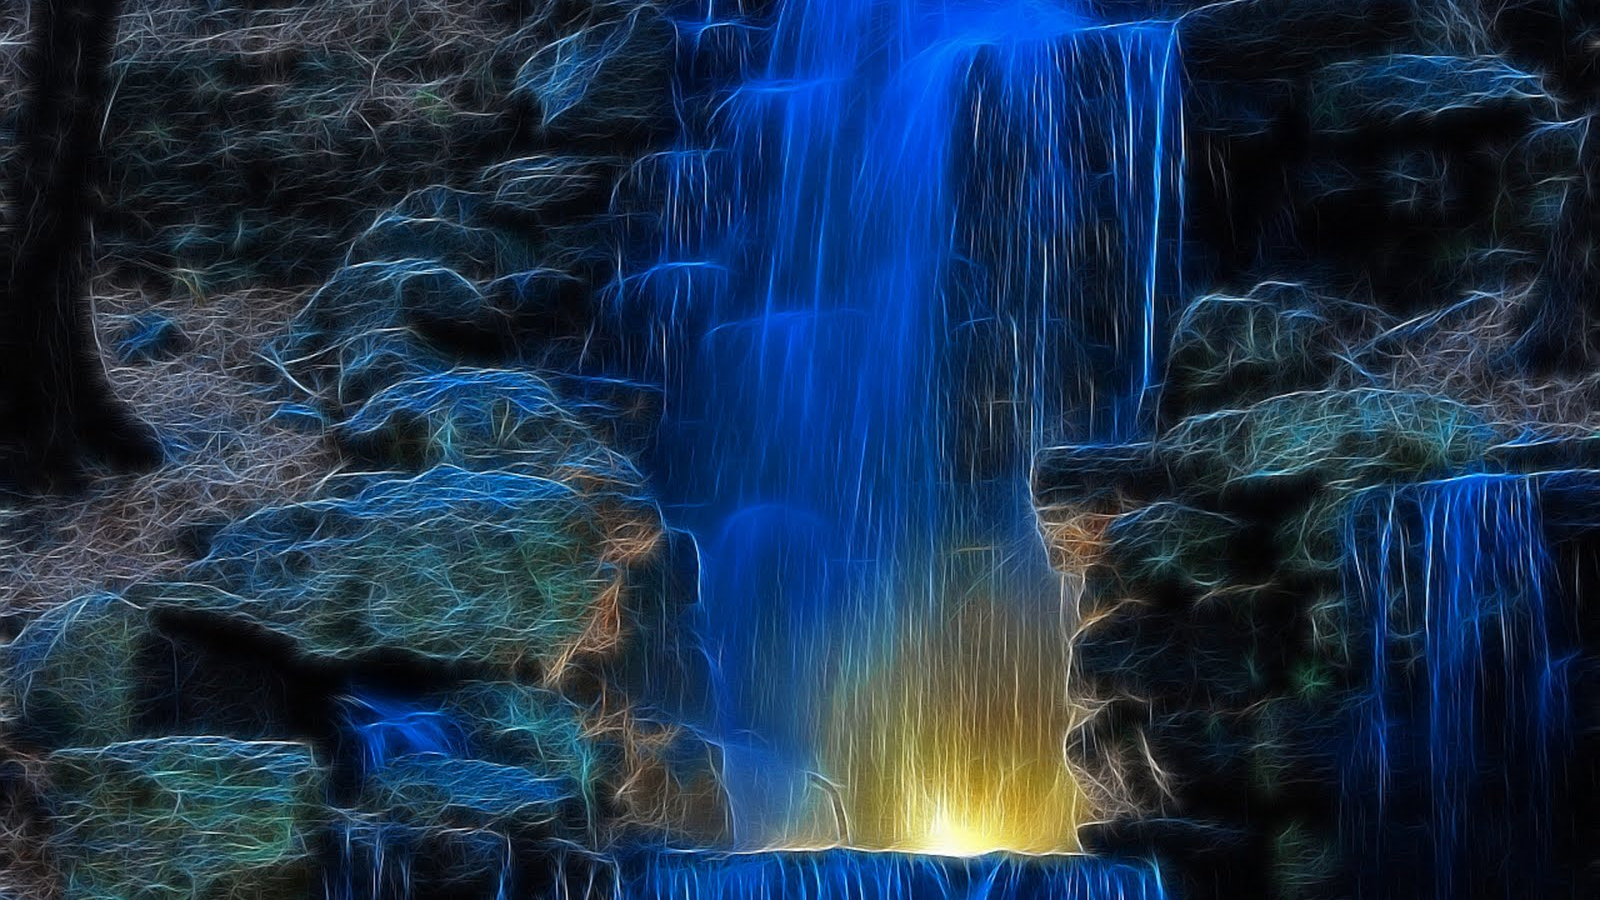 waterfall wallpapers category of hd